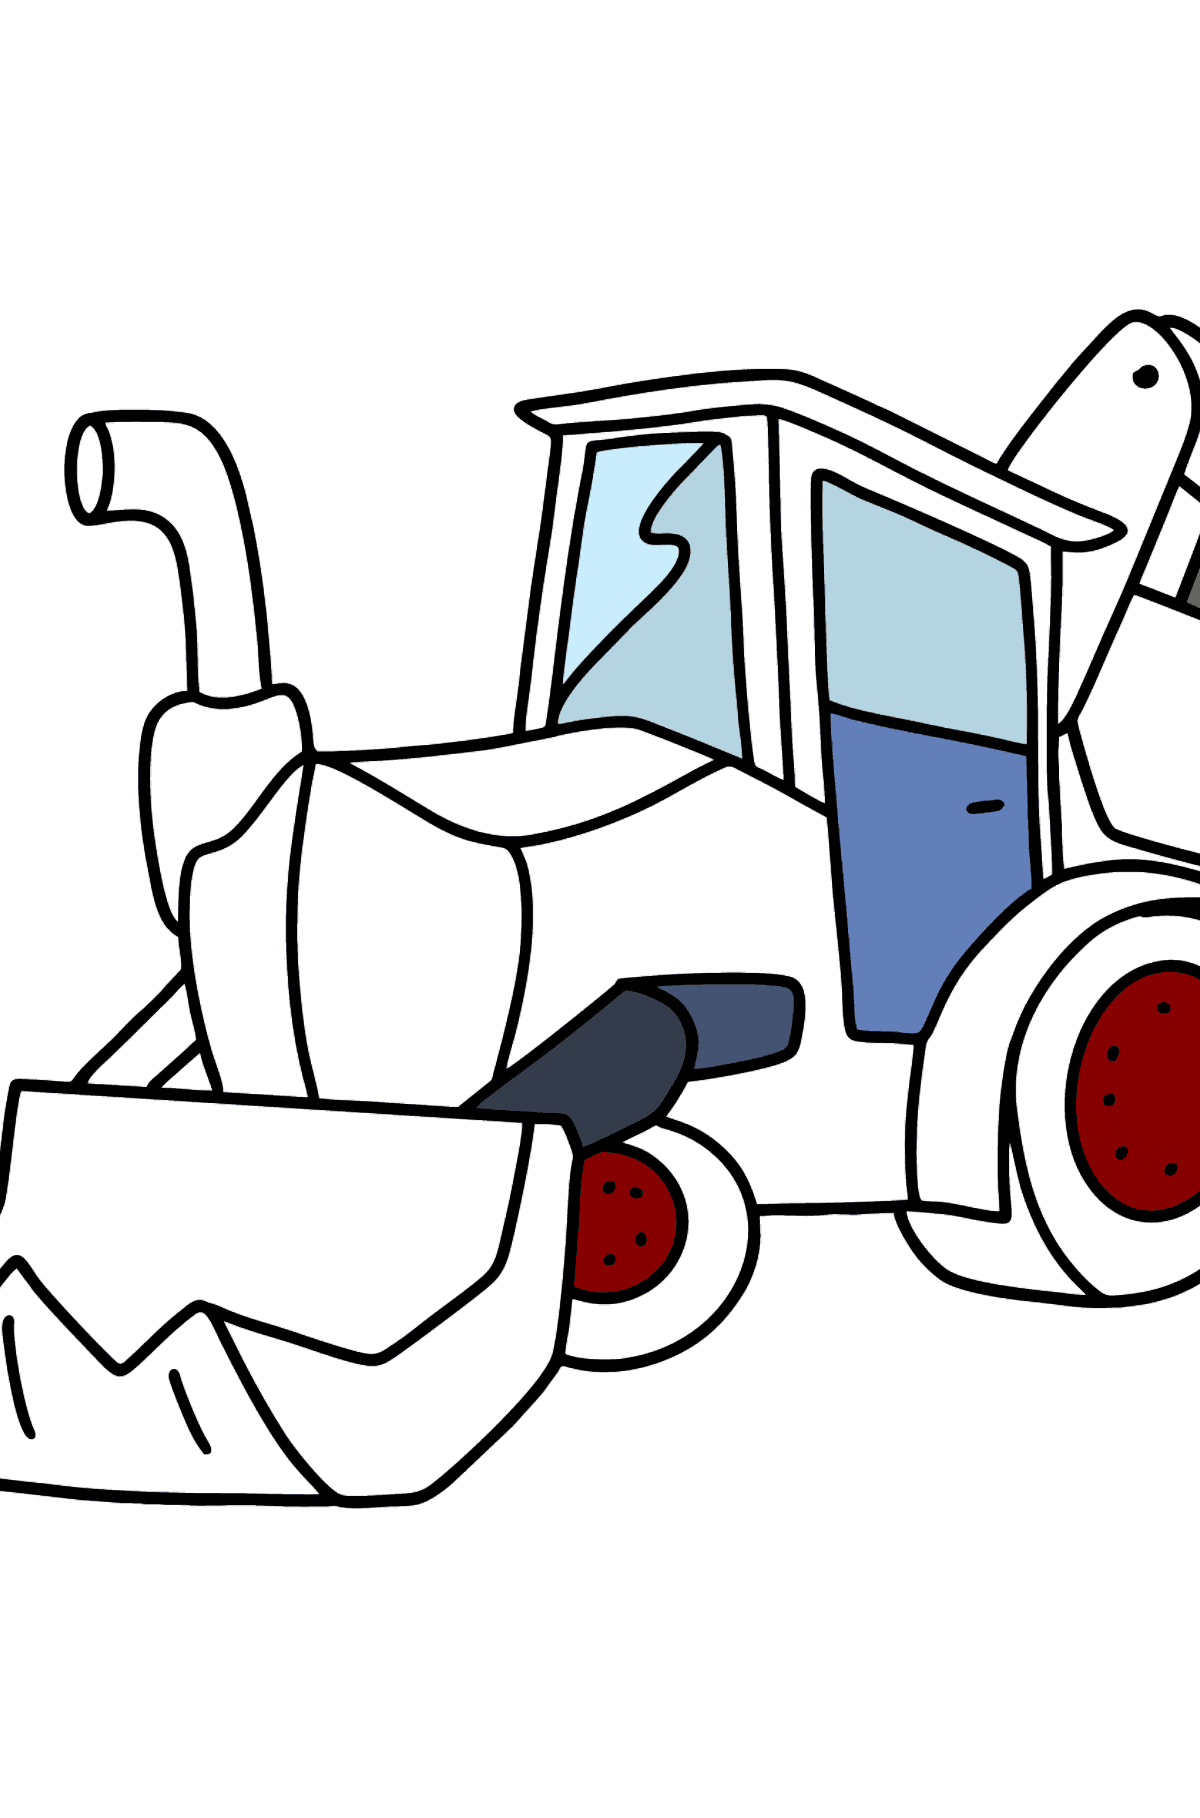 Tractor with Two Buckets coloring page - Coloring Pages for Kids